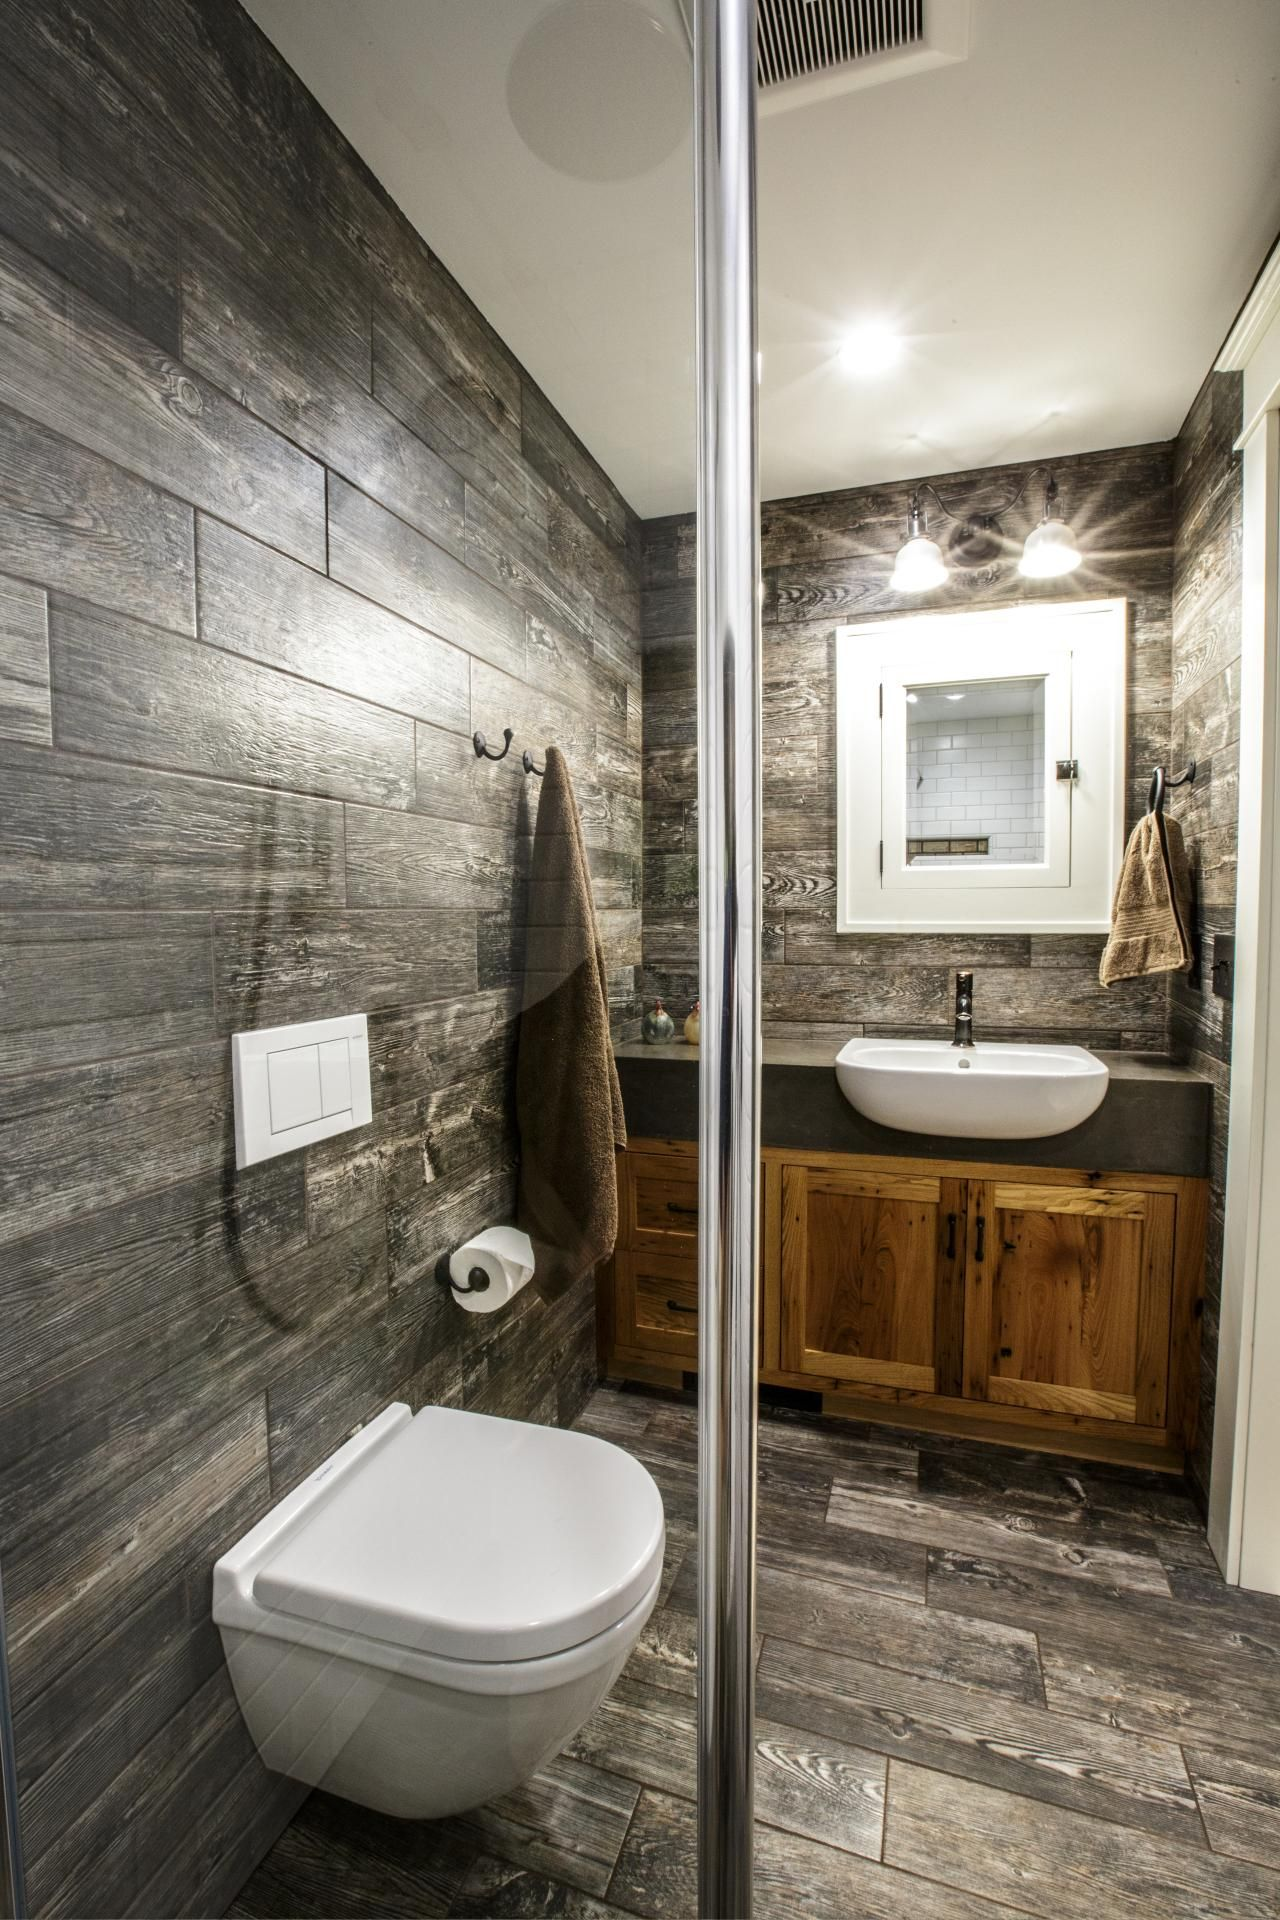 Progetti Di Bagni Piccoli inspiration photo of best rustic farmhouse bathroom flooring